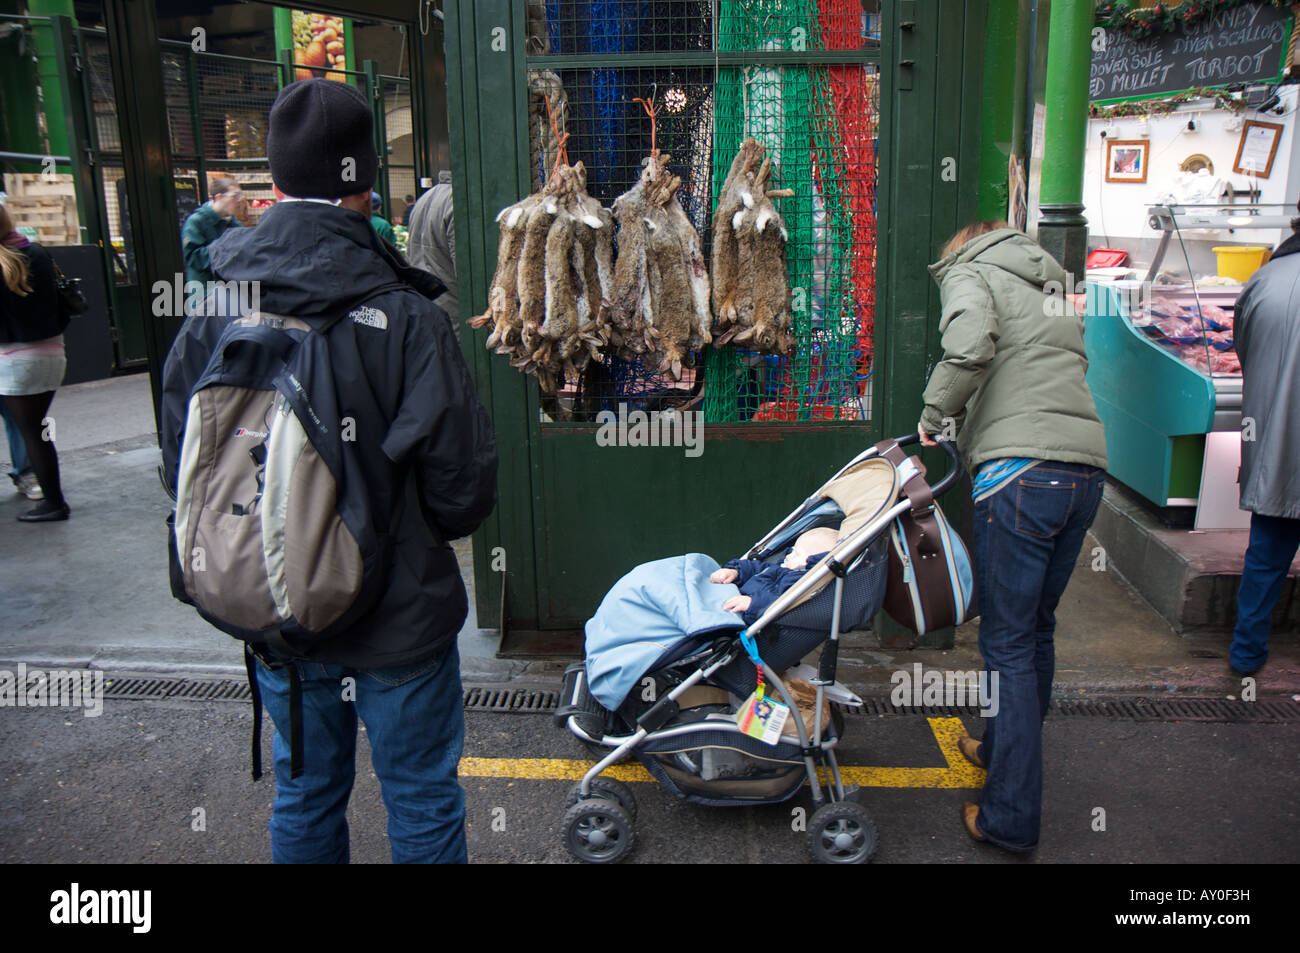 A man transfixed by hares for sale next to a woman and baby in London's Borough market - Stock Image